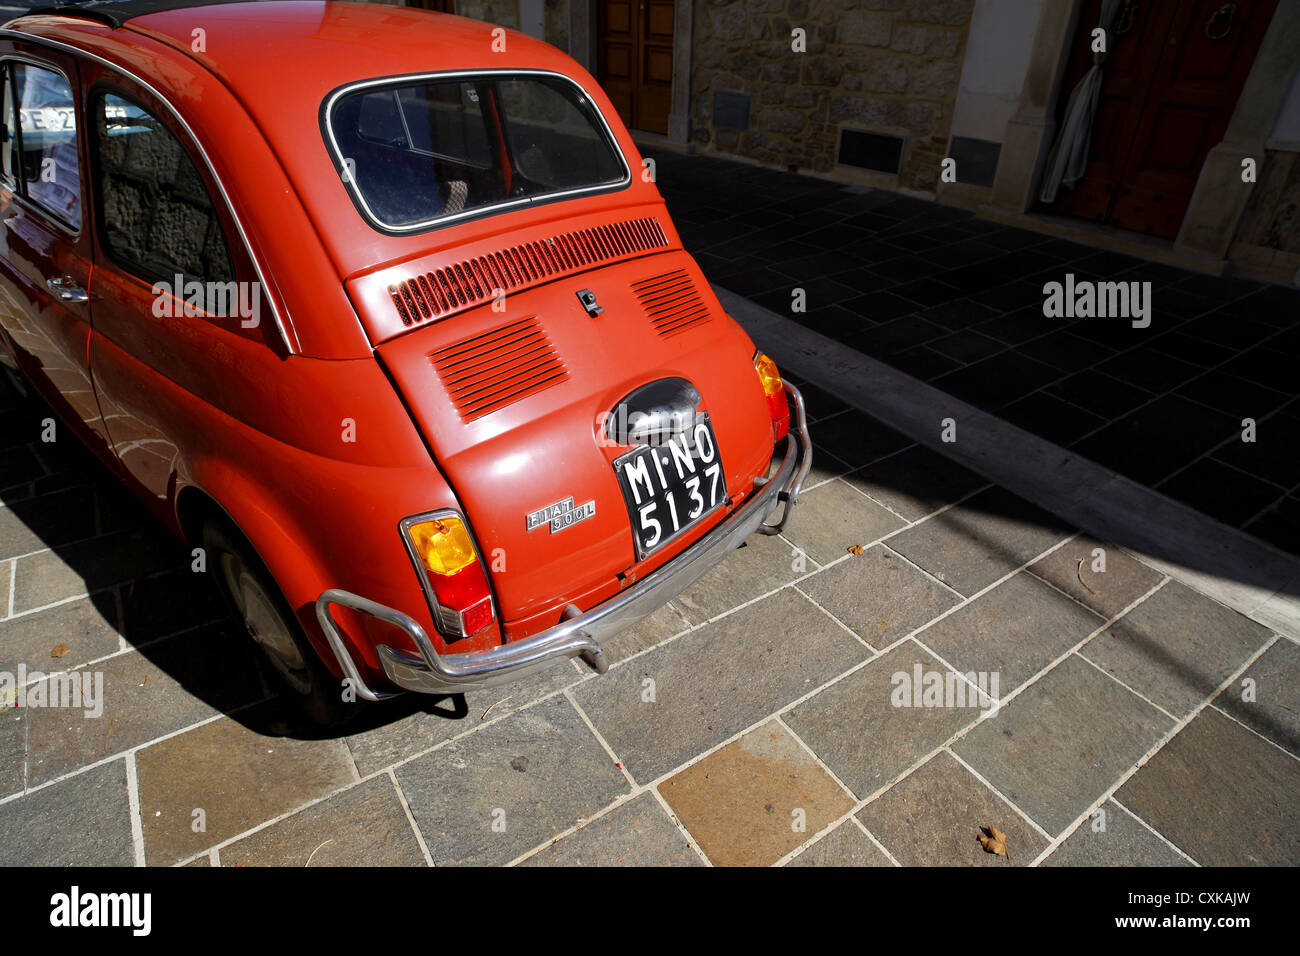 Fiat 500 parked in San Valentino Citeriore, Italy. - Stock Image